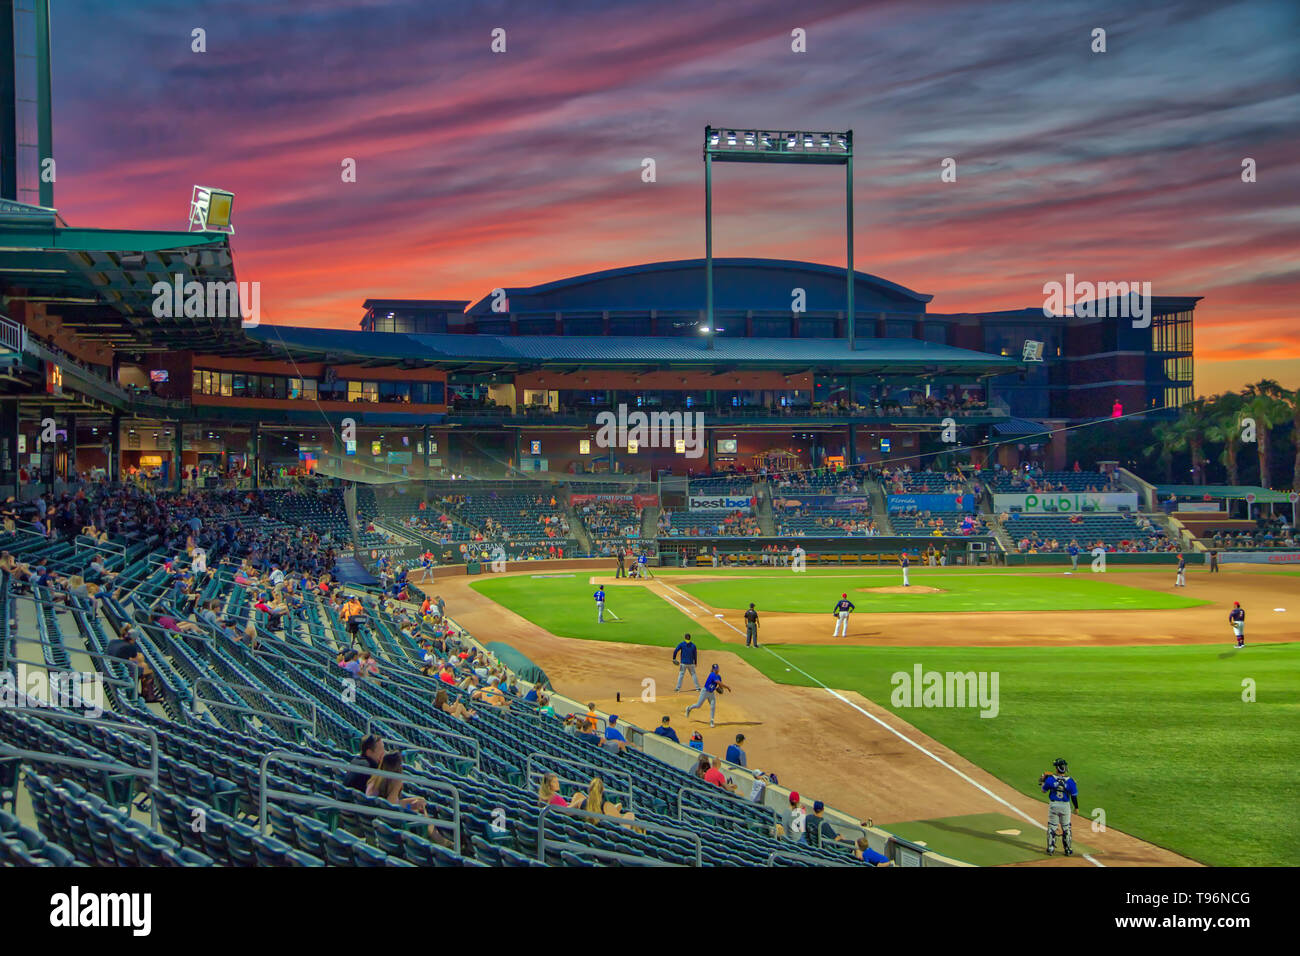 Baseball Grounds Sunset Stock Photo